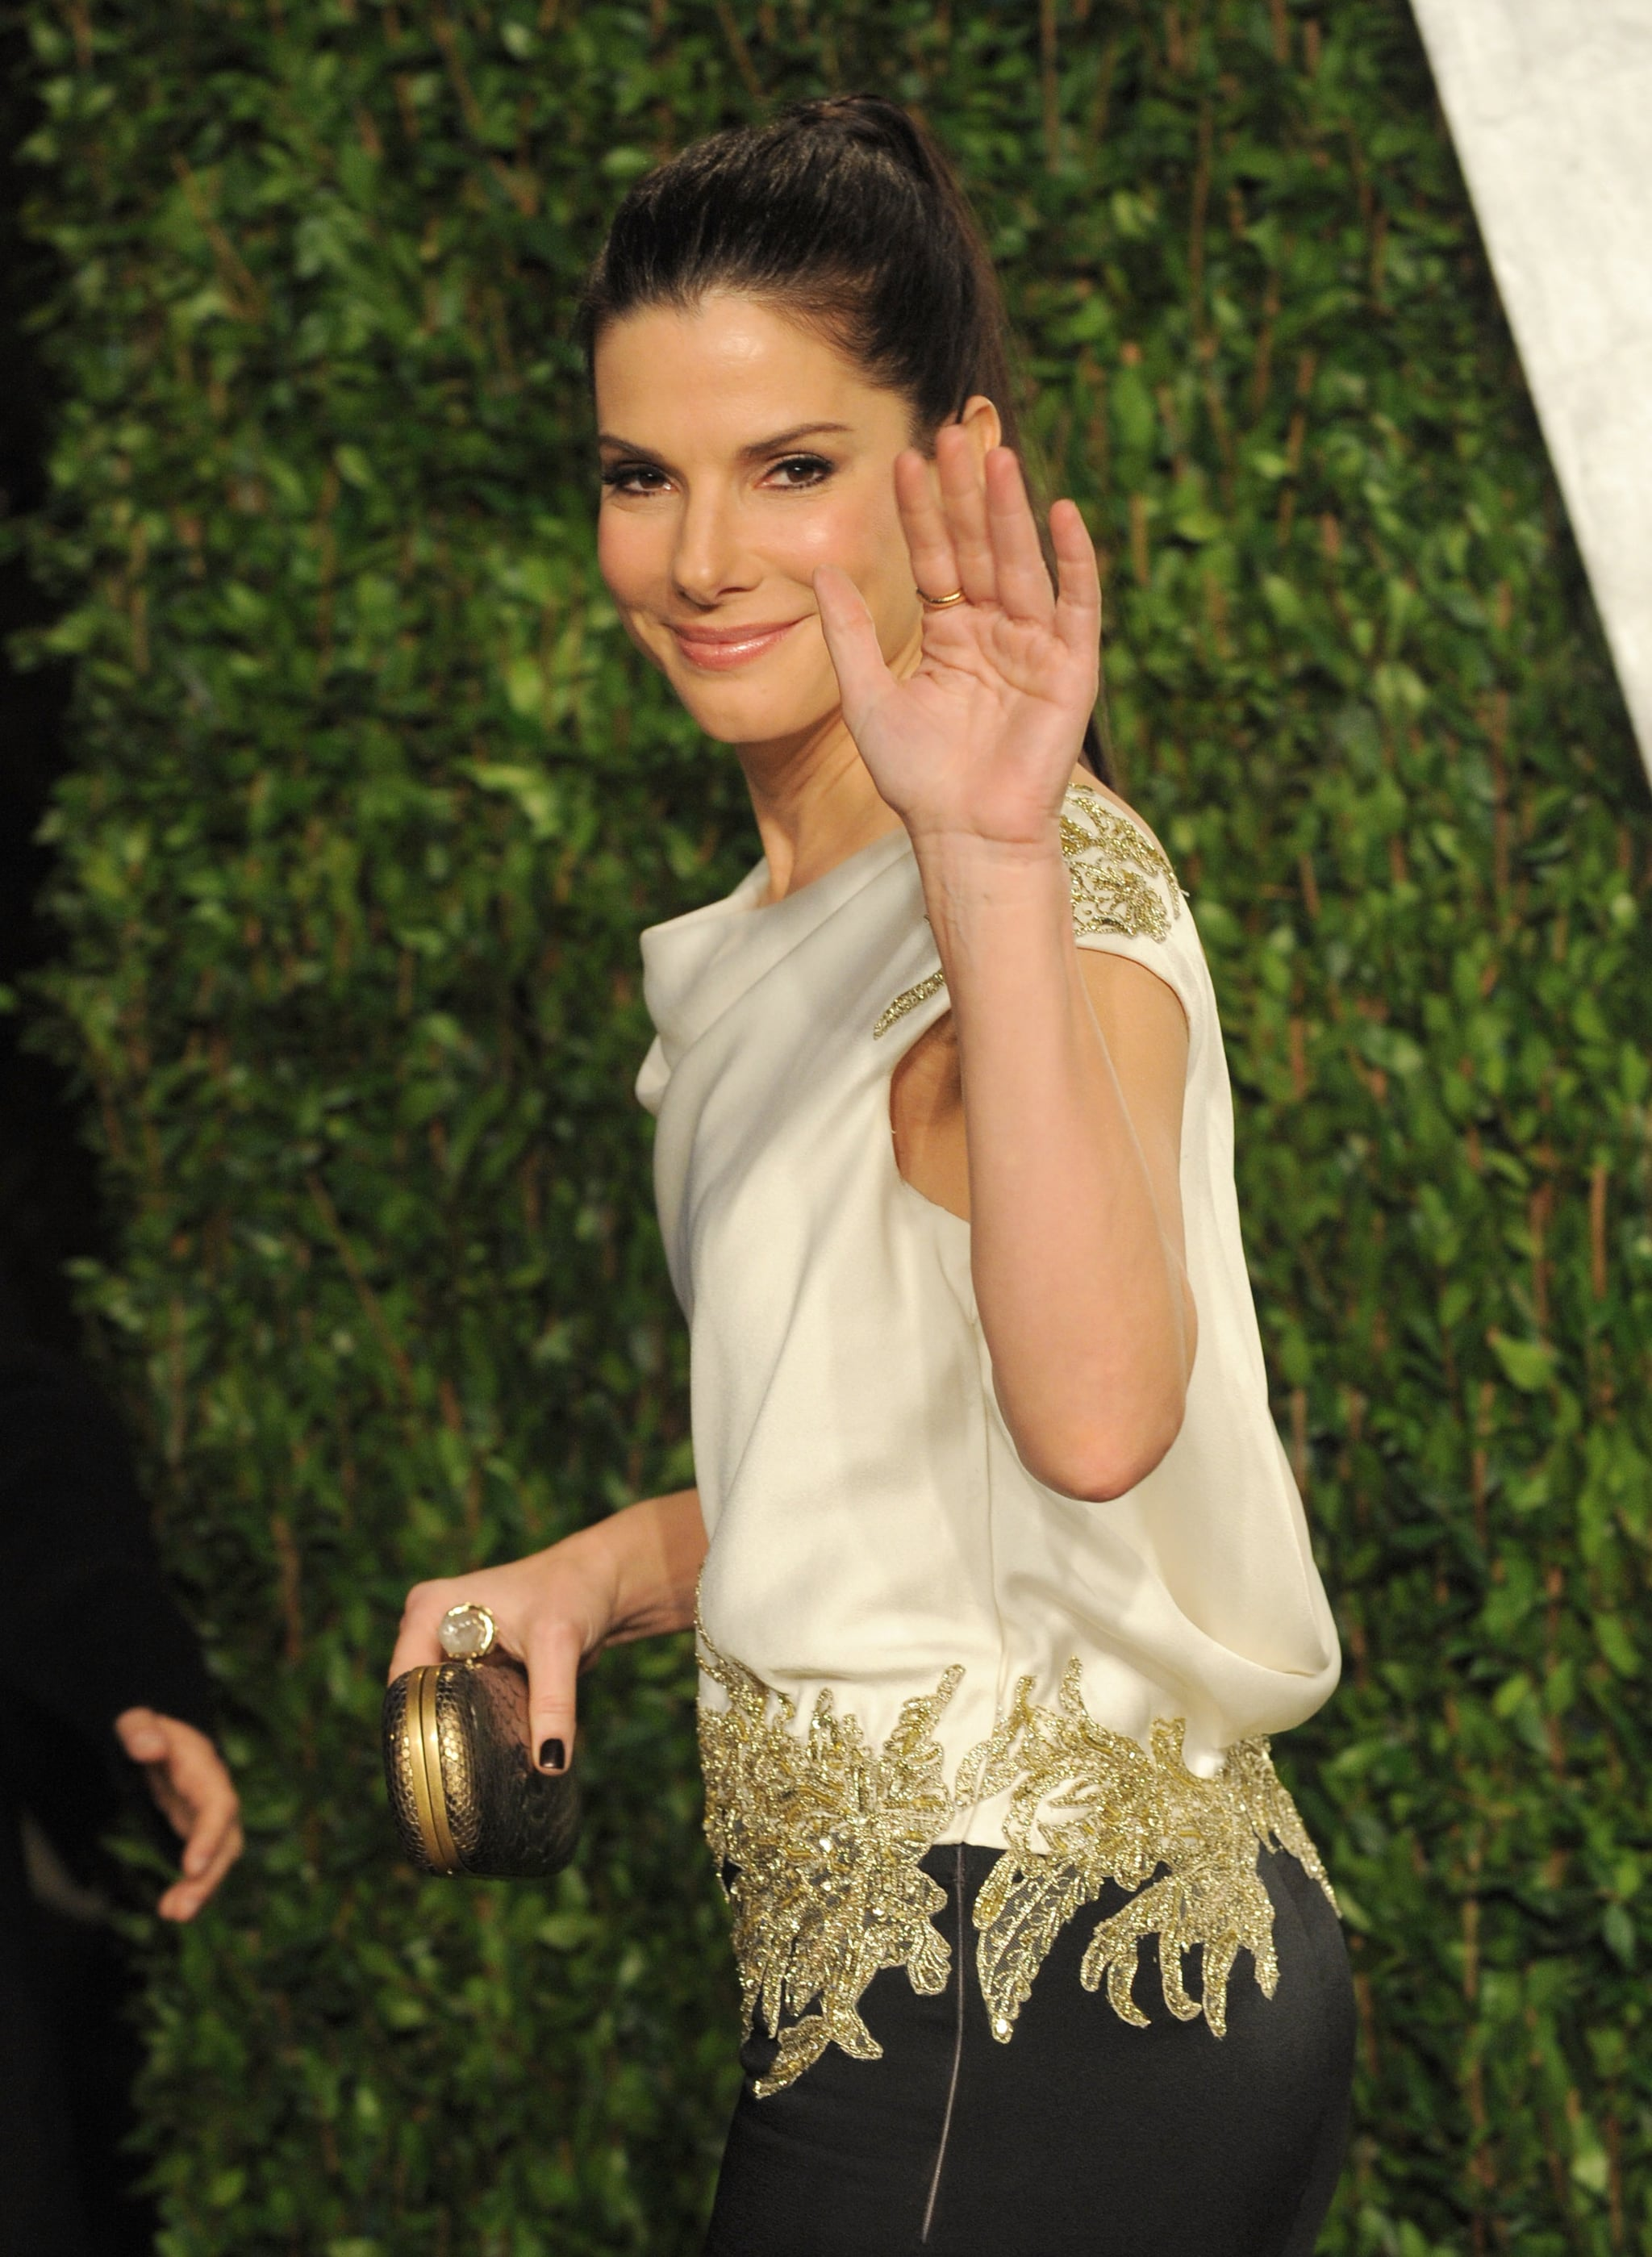 Sandra waves hello to photographers at the Vanity Fair party.